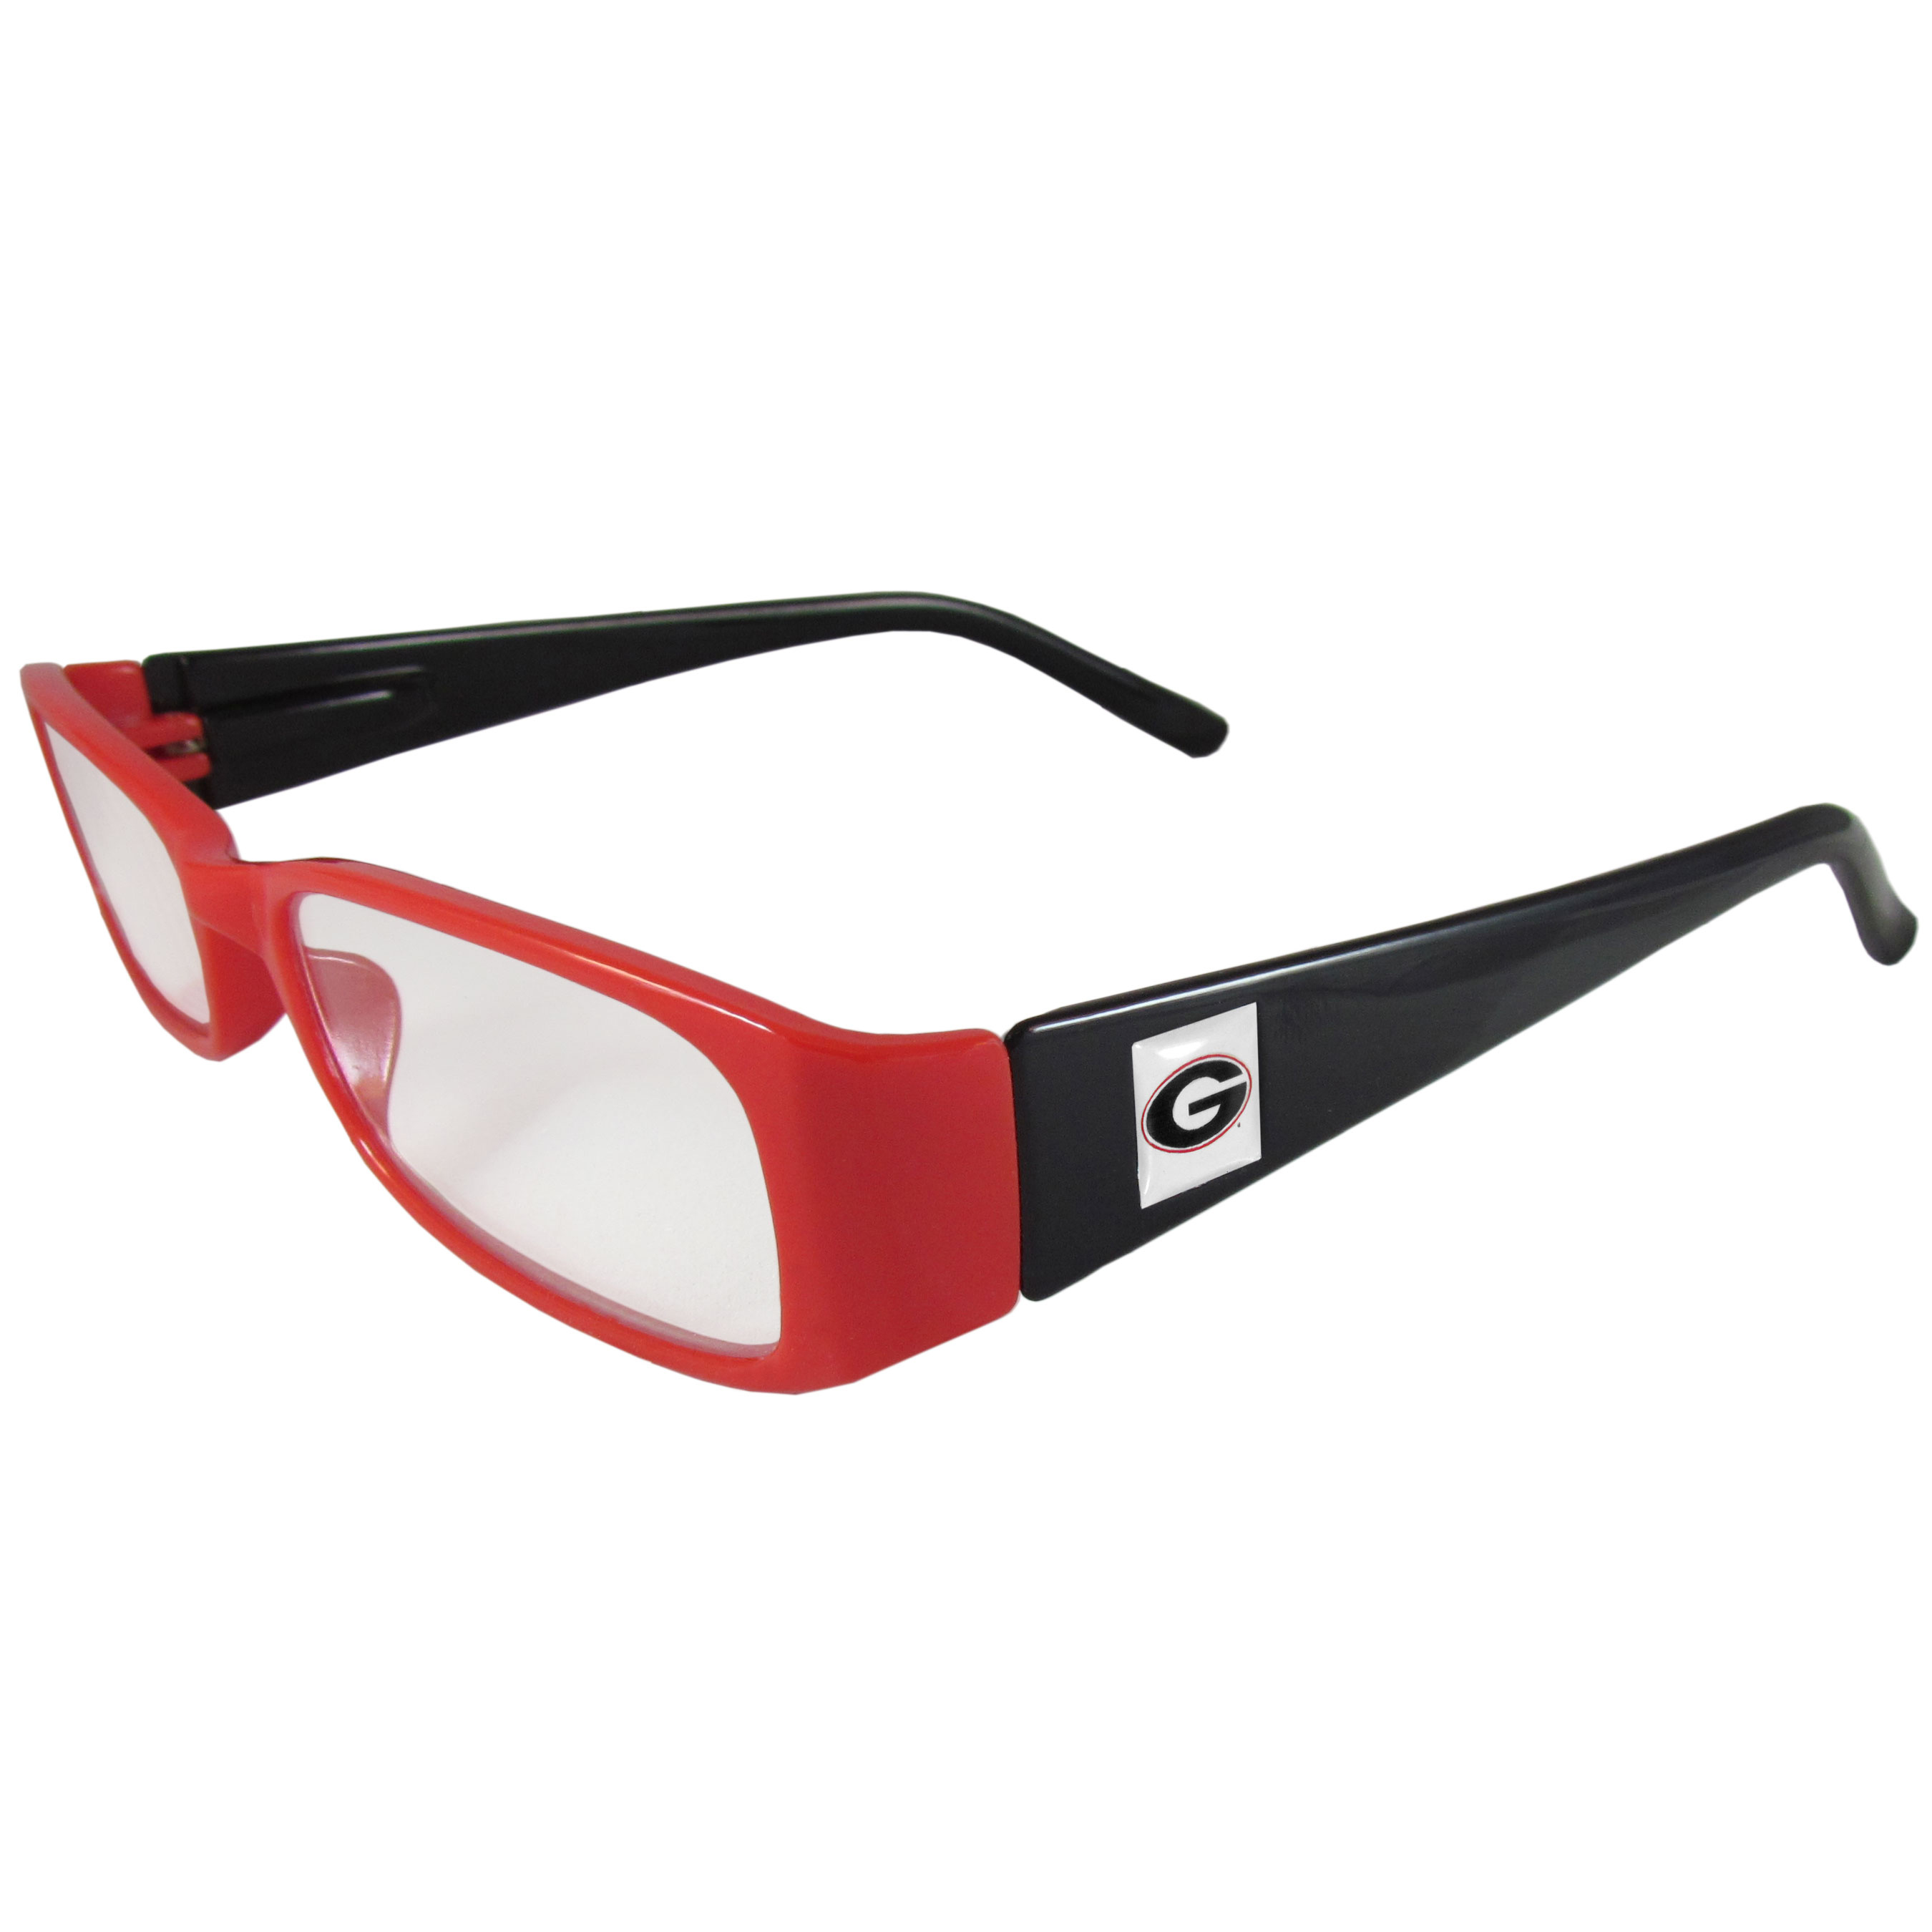 Georgia Bulldogs Reading Glasses +1.25 - Our Georgia Bulldogs reading glasses are 5.25 inches wide and feature the team logo on each arm. Magnification Power 1.25